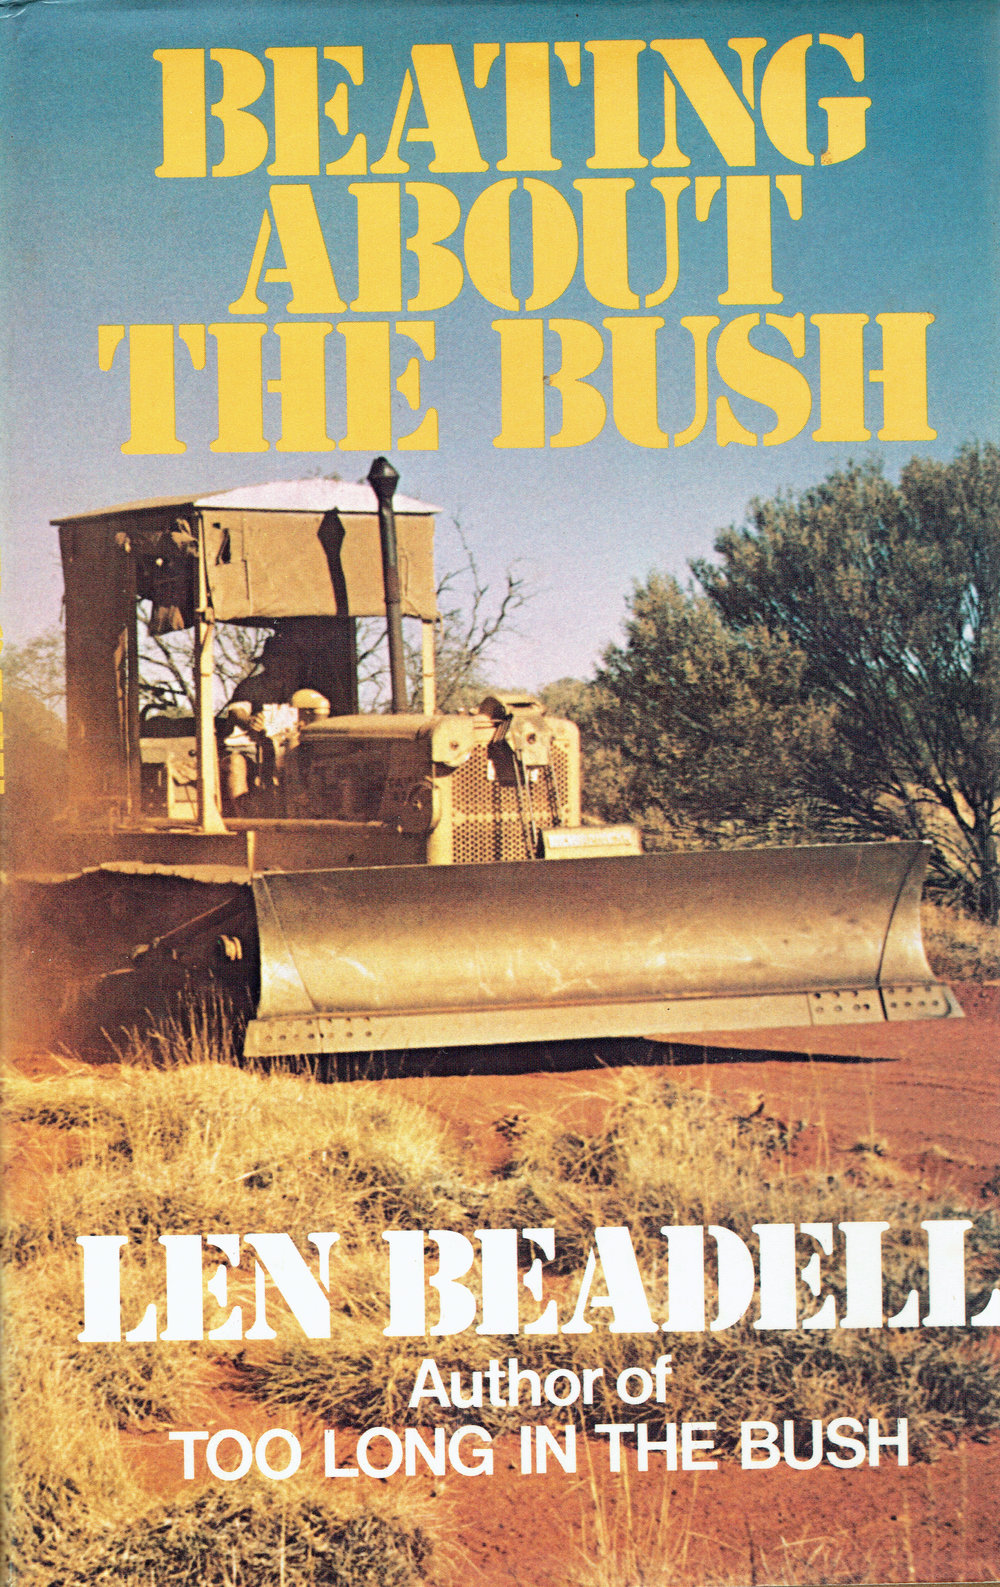 Beating about the bush   Len Beadell